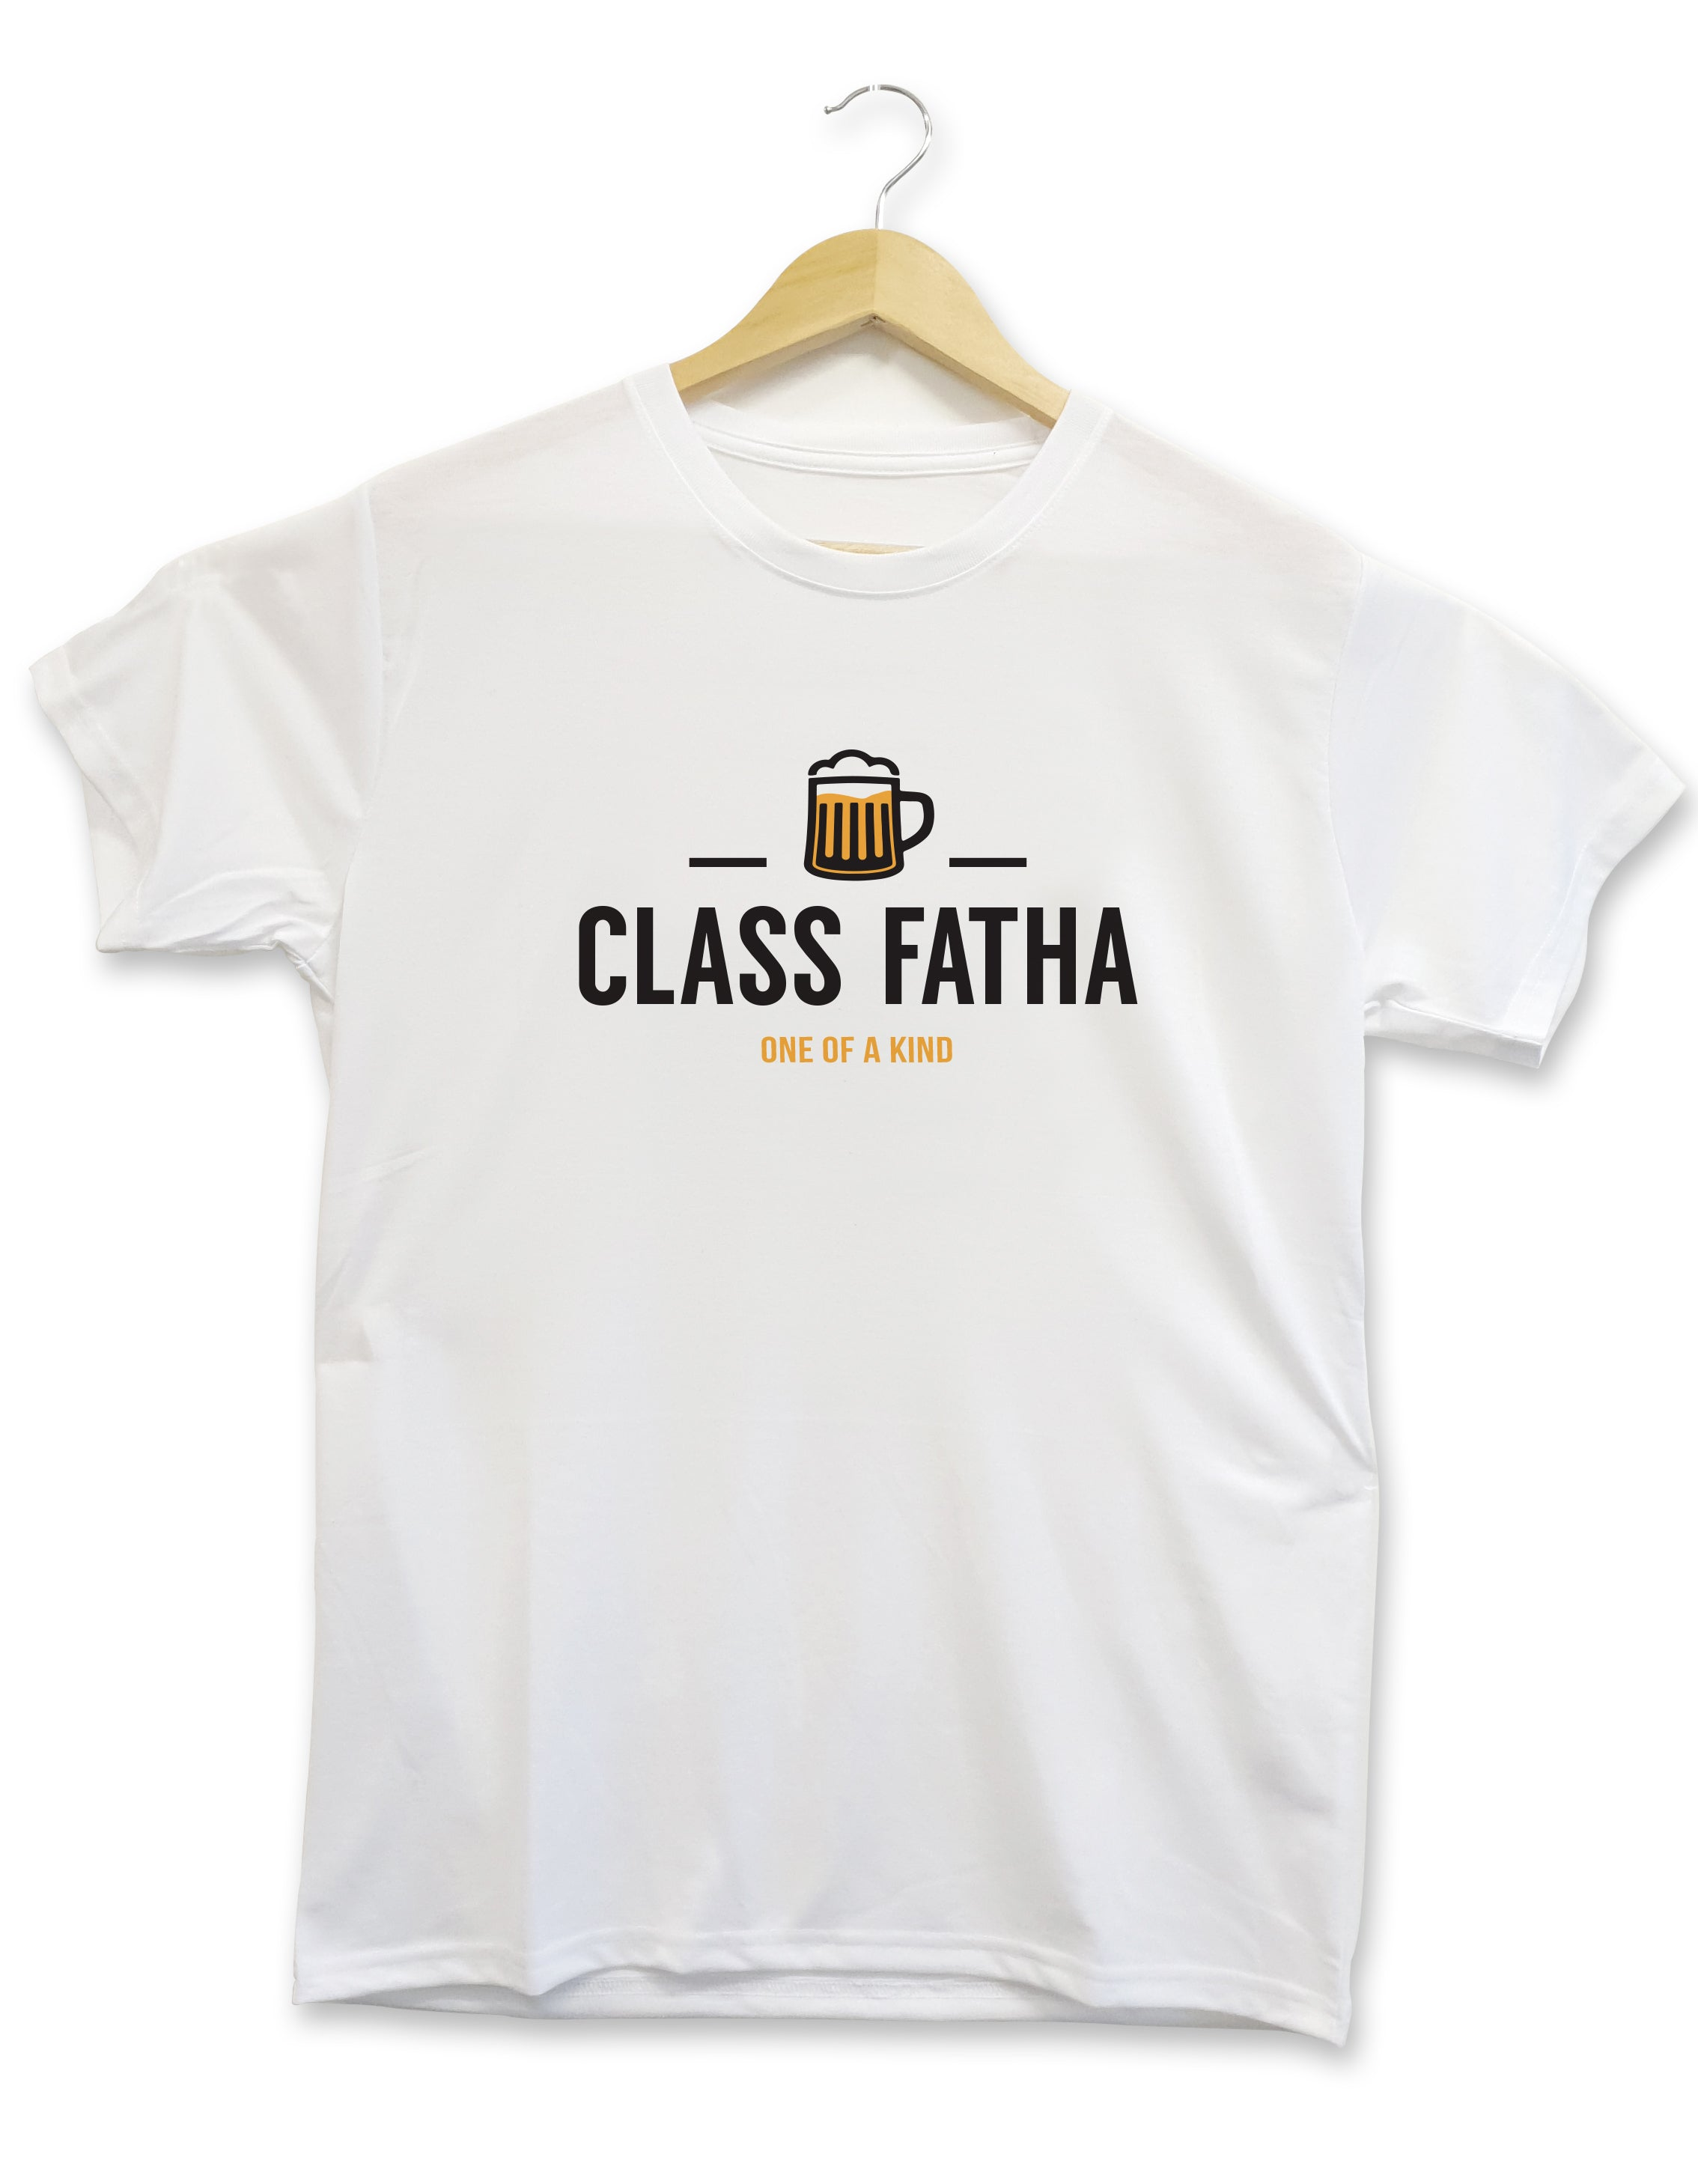 711c85f1f class fatha one of a kind funny geordie t shirt newcastle present and gifts  for dad